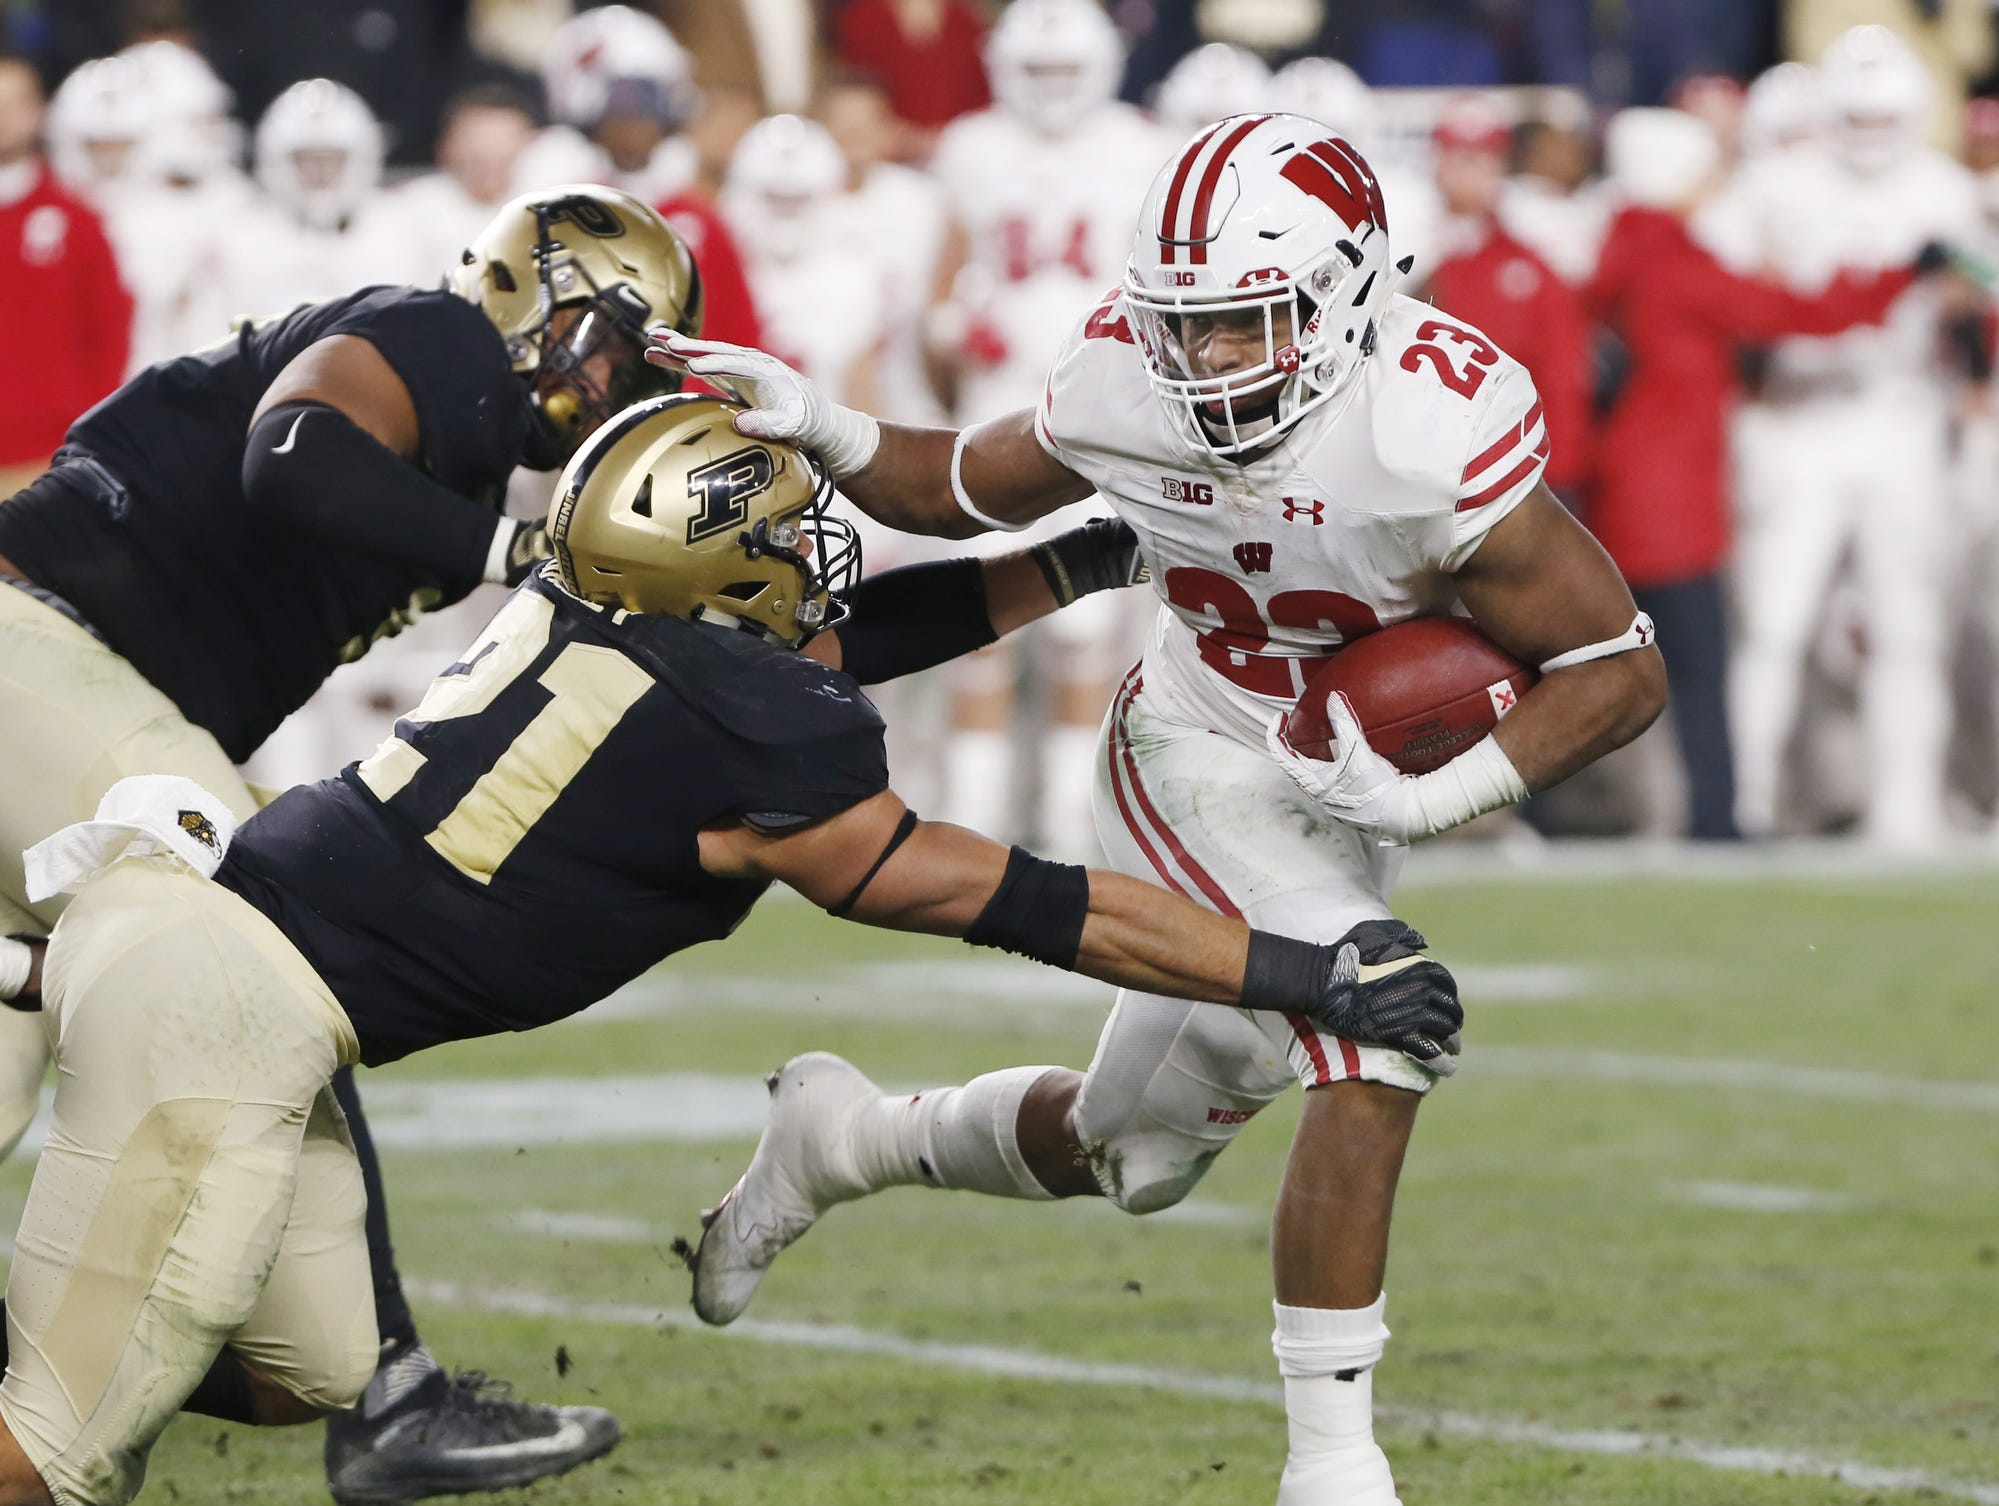 Jonathan Taylor of Wisconsin gets past Markus Bailey of Purdue on a second half carry Saturday, November 17, 2018, at Ross-Ade Stadium. Purdue fell to Wisconsin 47-44 3OT.